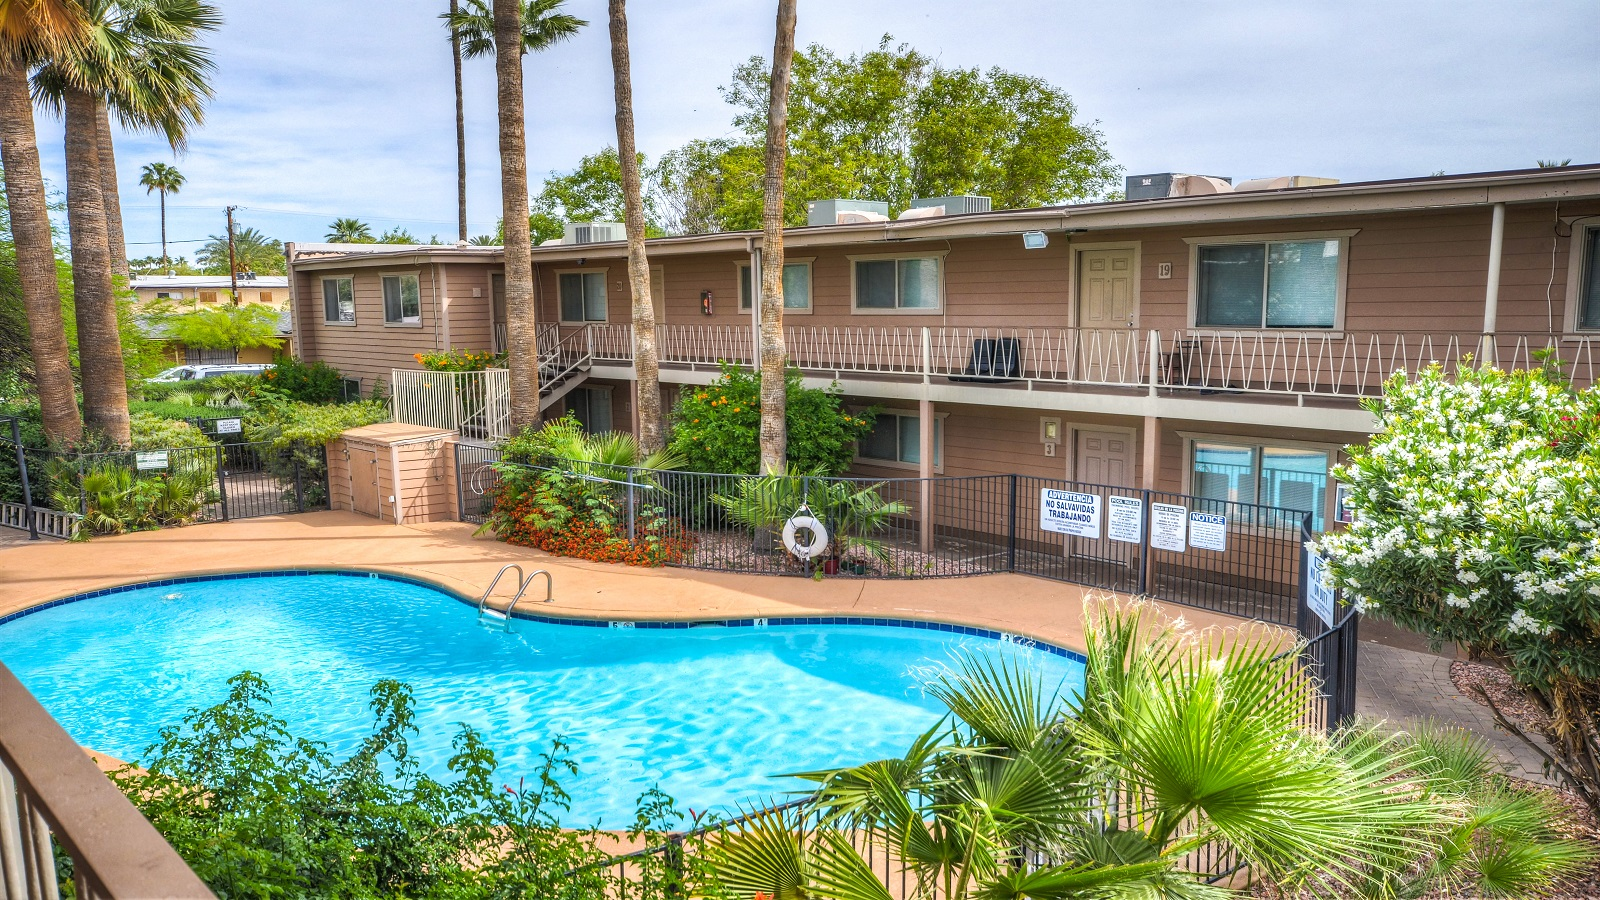 Pierson Palms Apartments | 357 West Pierson Street, Phoenix, AZ 85013 | 20 Units | Built in 1958 | $2,220,000 | $111,000 Per Unit | $133.84 Per SF